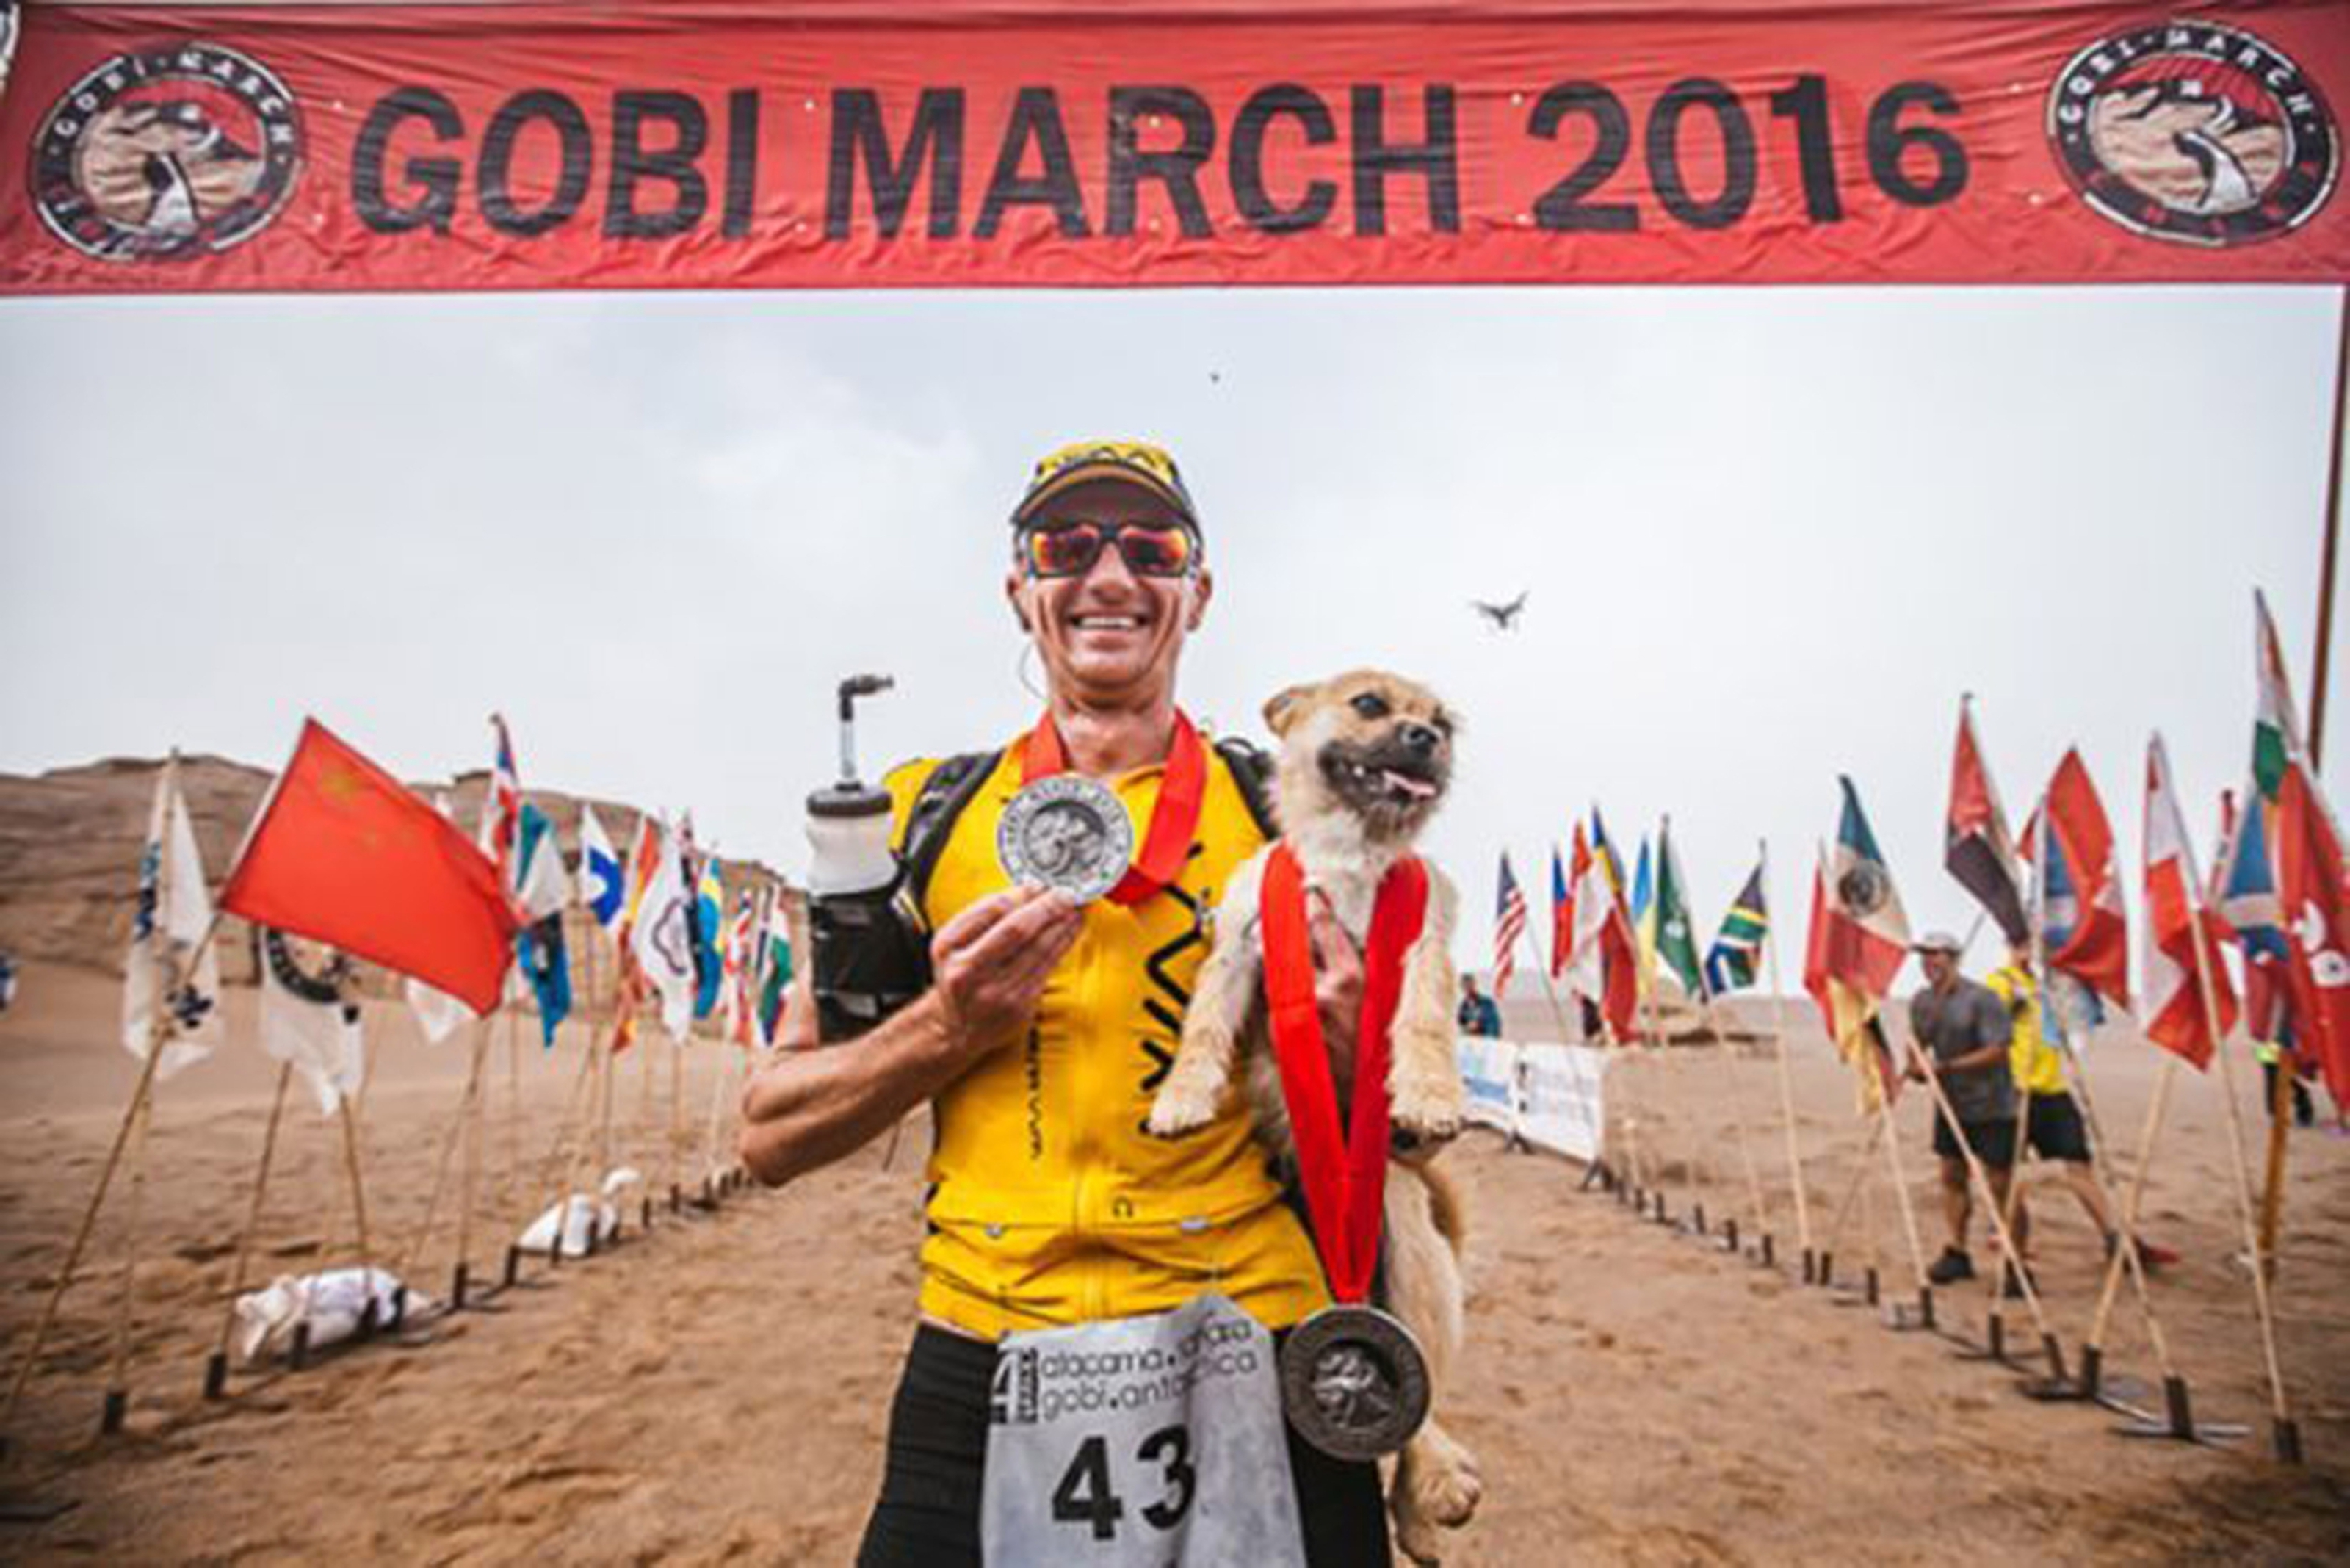 Dion Leonard with the dog, who has now been named Gobi